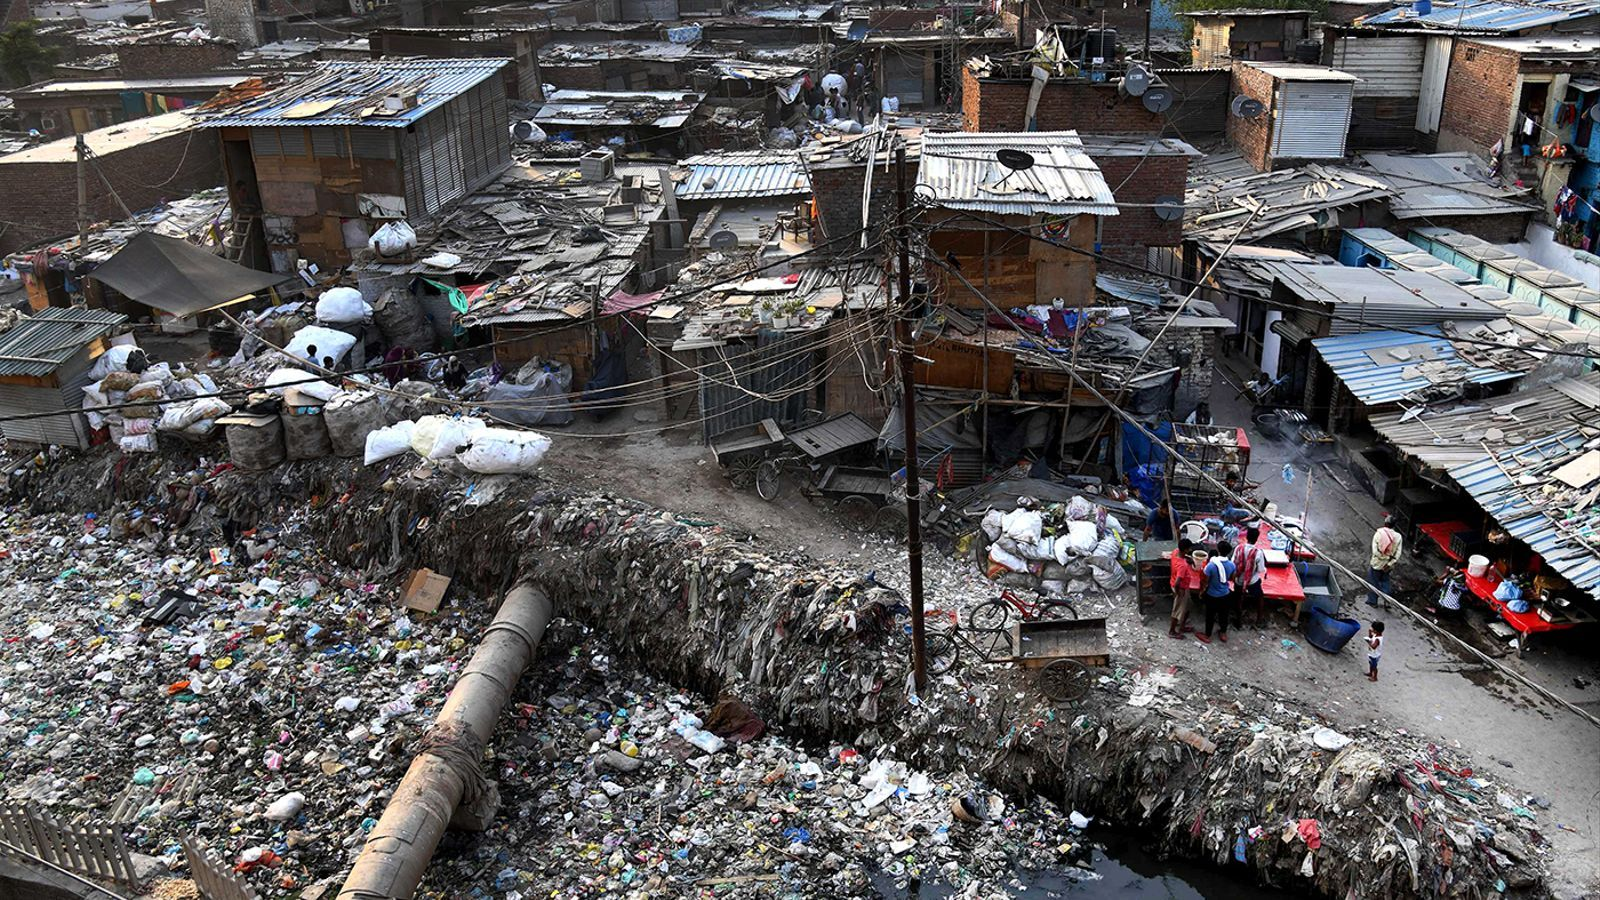 Taimur Nagar shantytown area in New Delhi, India